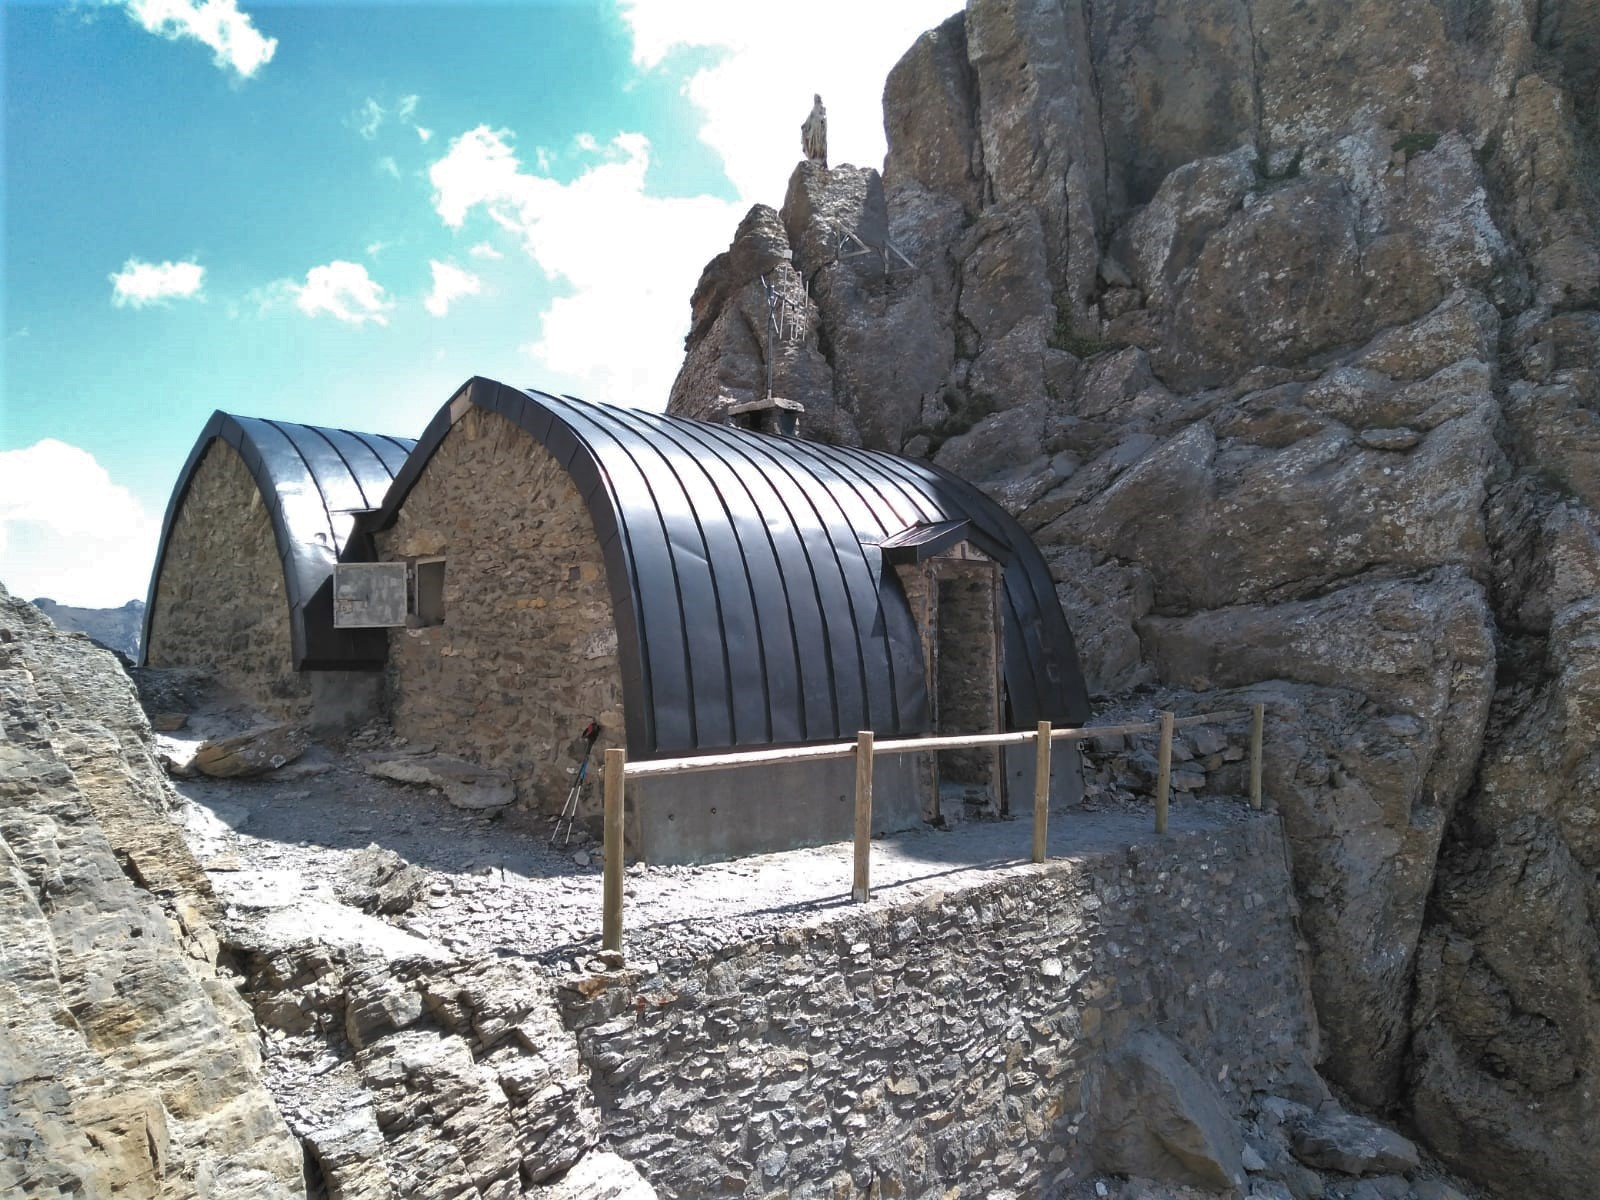 tucarroya 1 - Mountain Shelters Ordesa